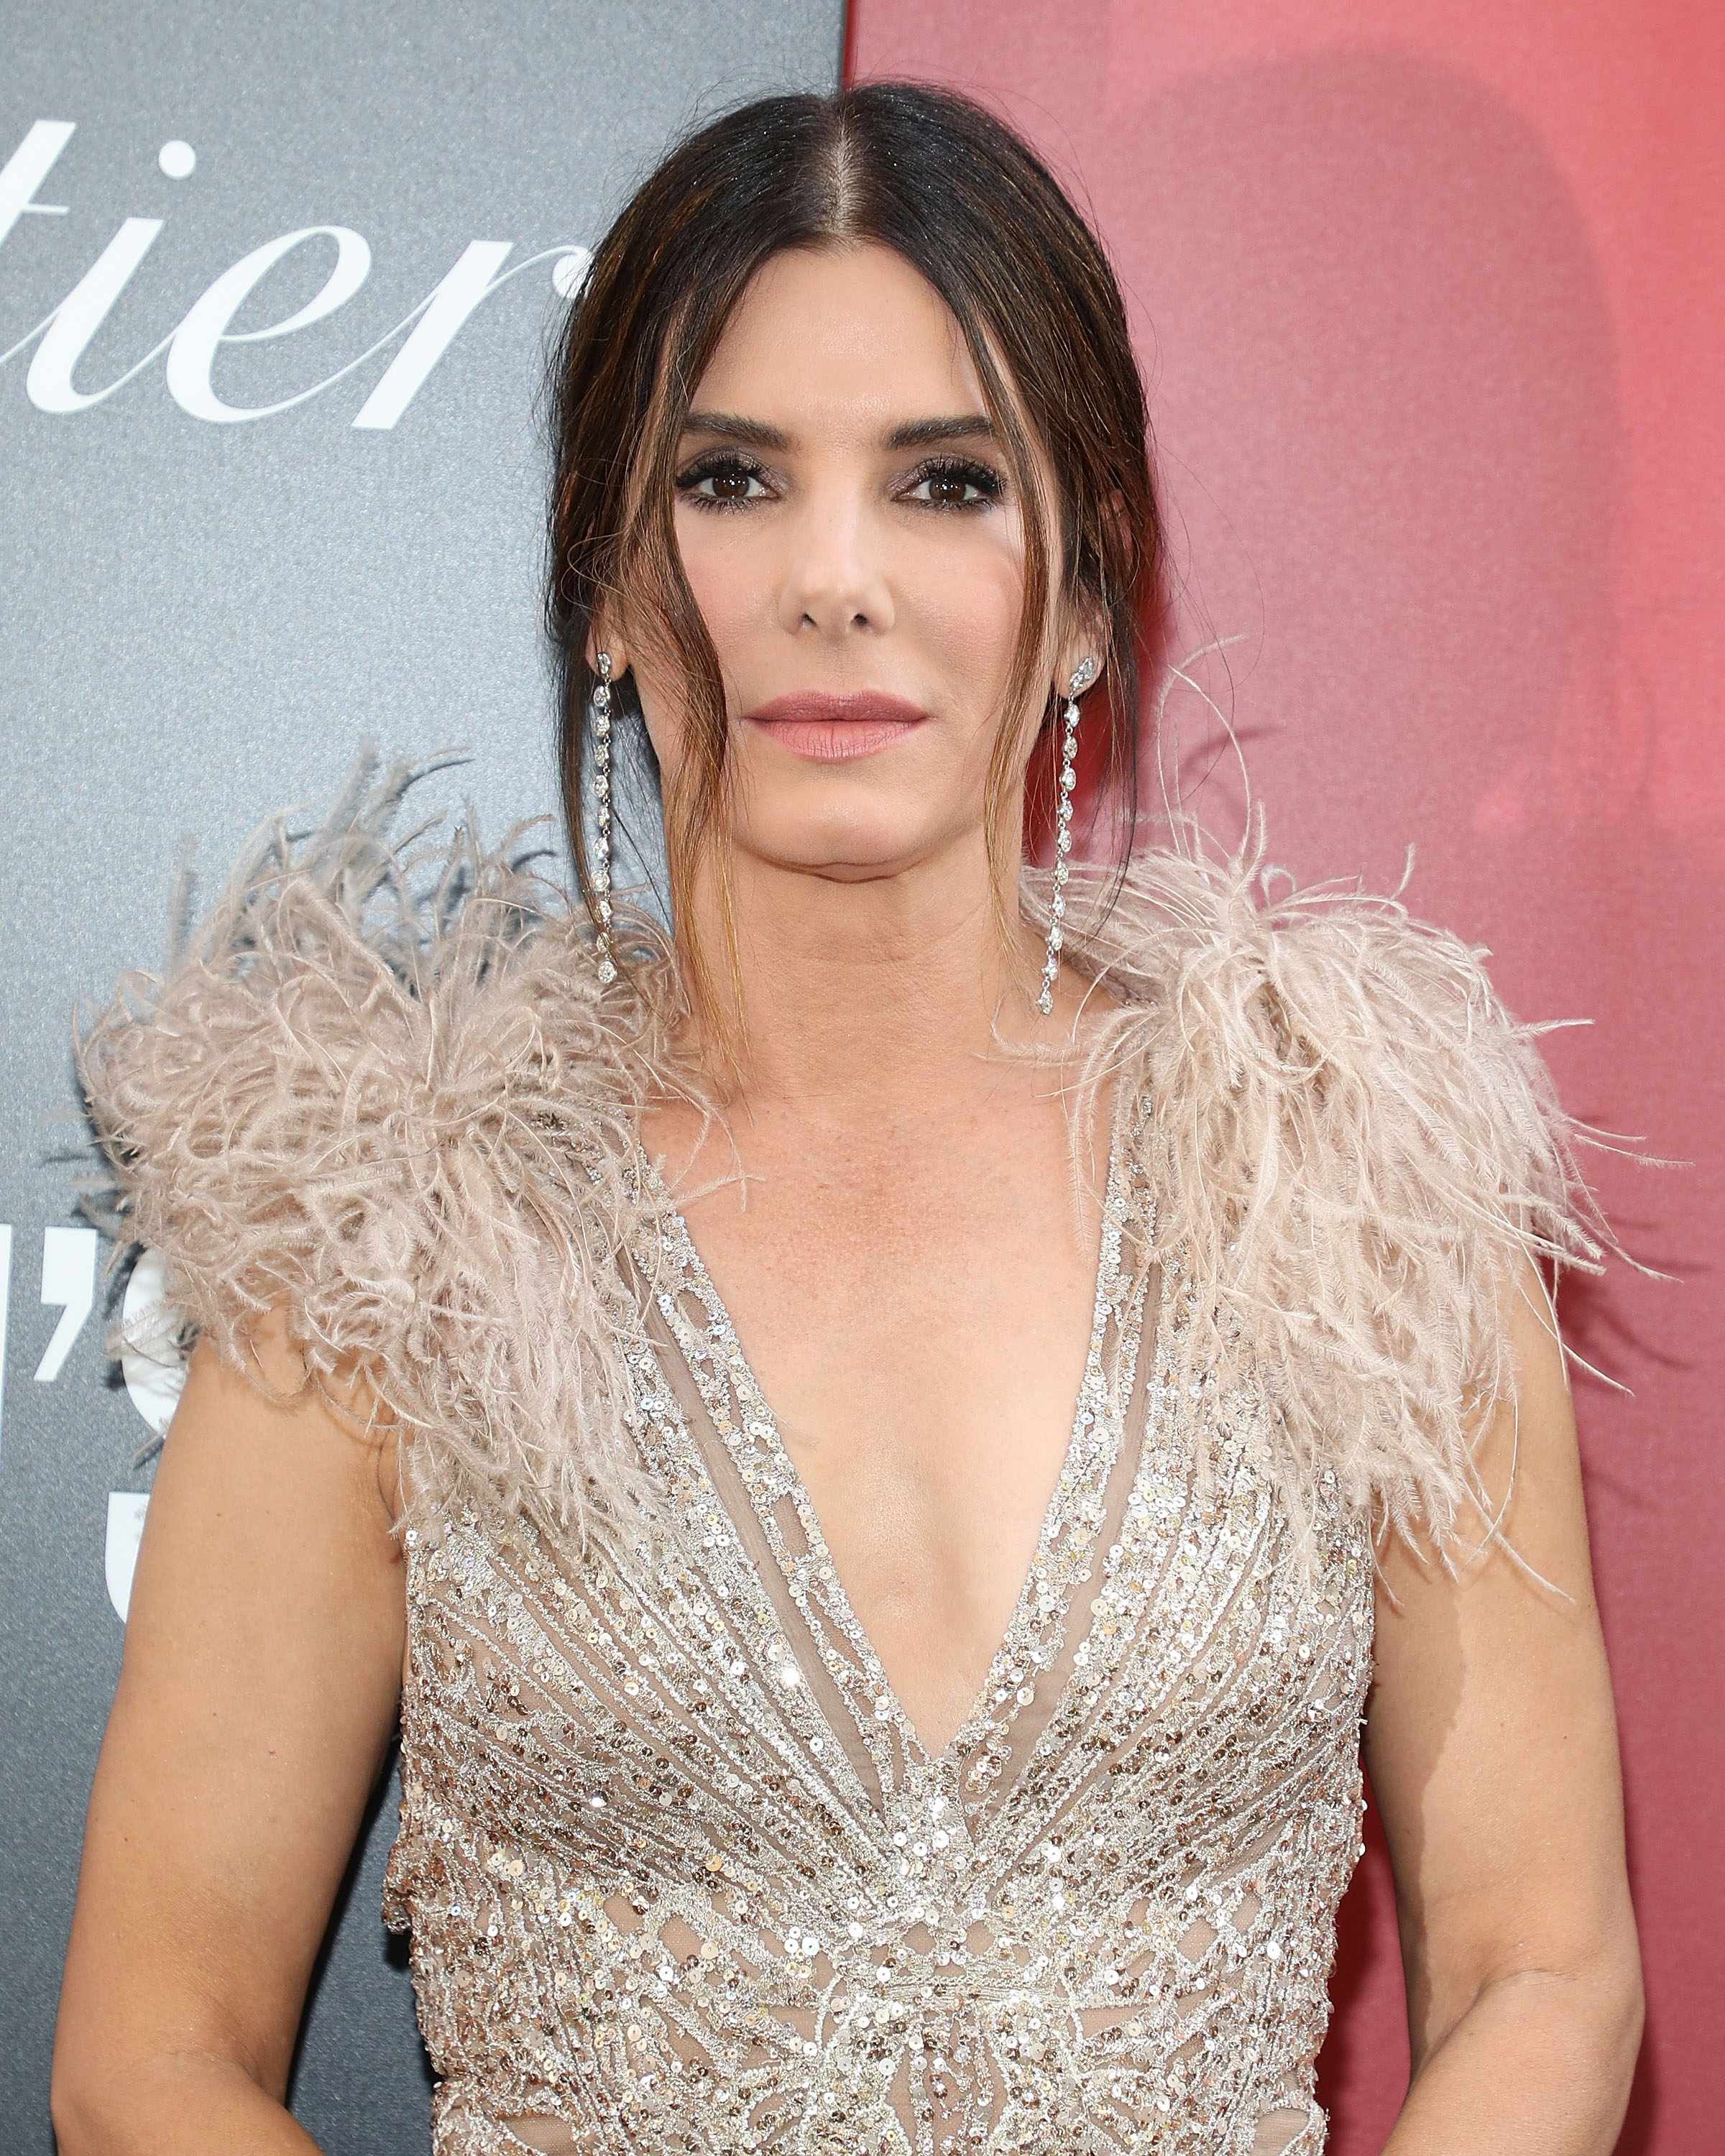 """NEW YORK, NY - JUNE 05:  Sandra Bullock attends the world premiere of """"Ocean's 8"""" at Alice Tully Hall at Lincoln Center on June 5, 2018 in New York City.  (Photo by Taylor Hill/Getty Images)  Getty, TL"""